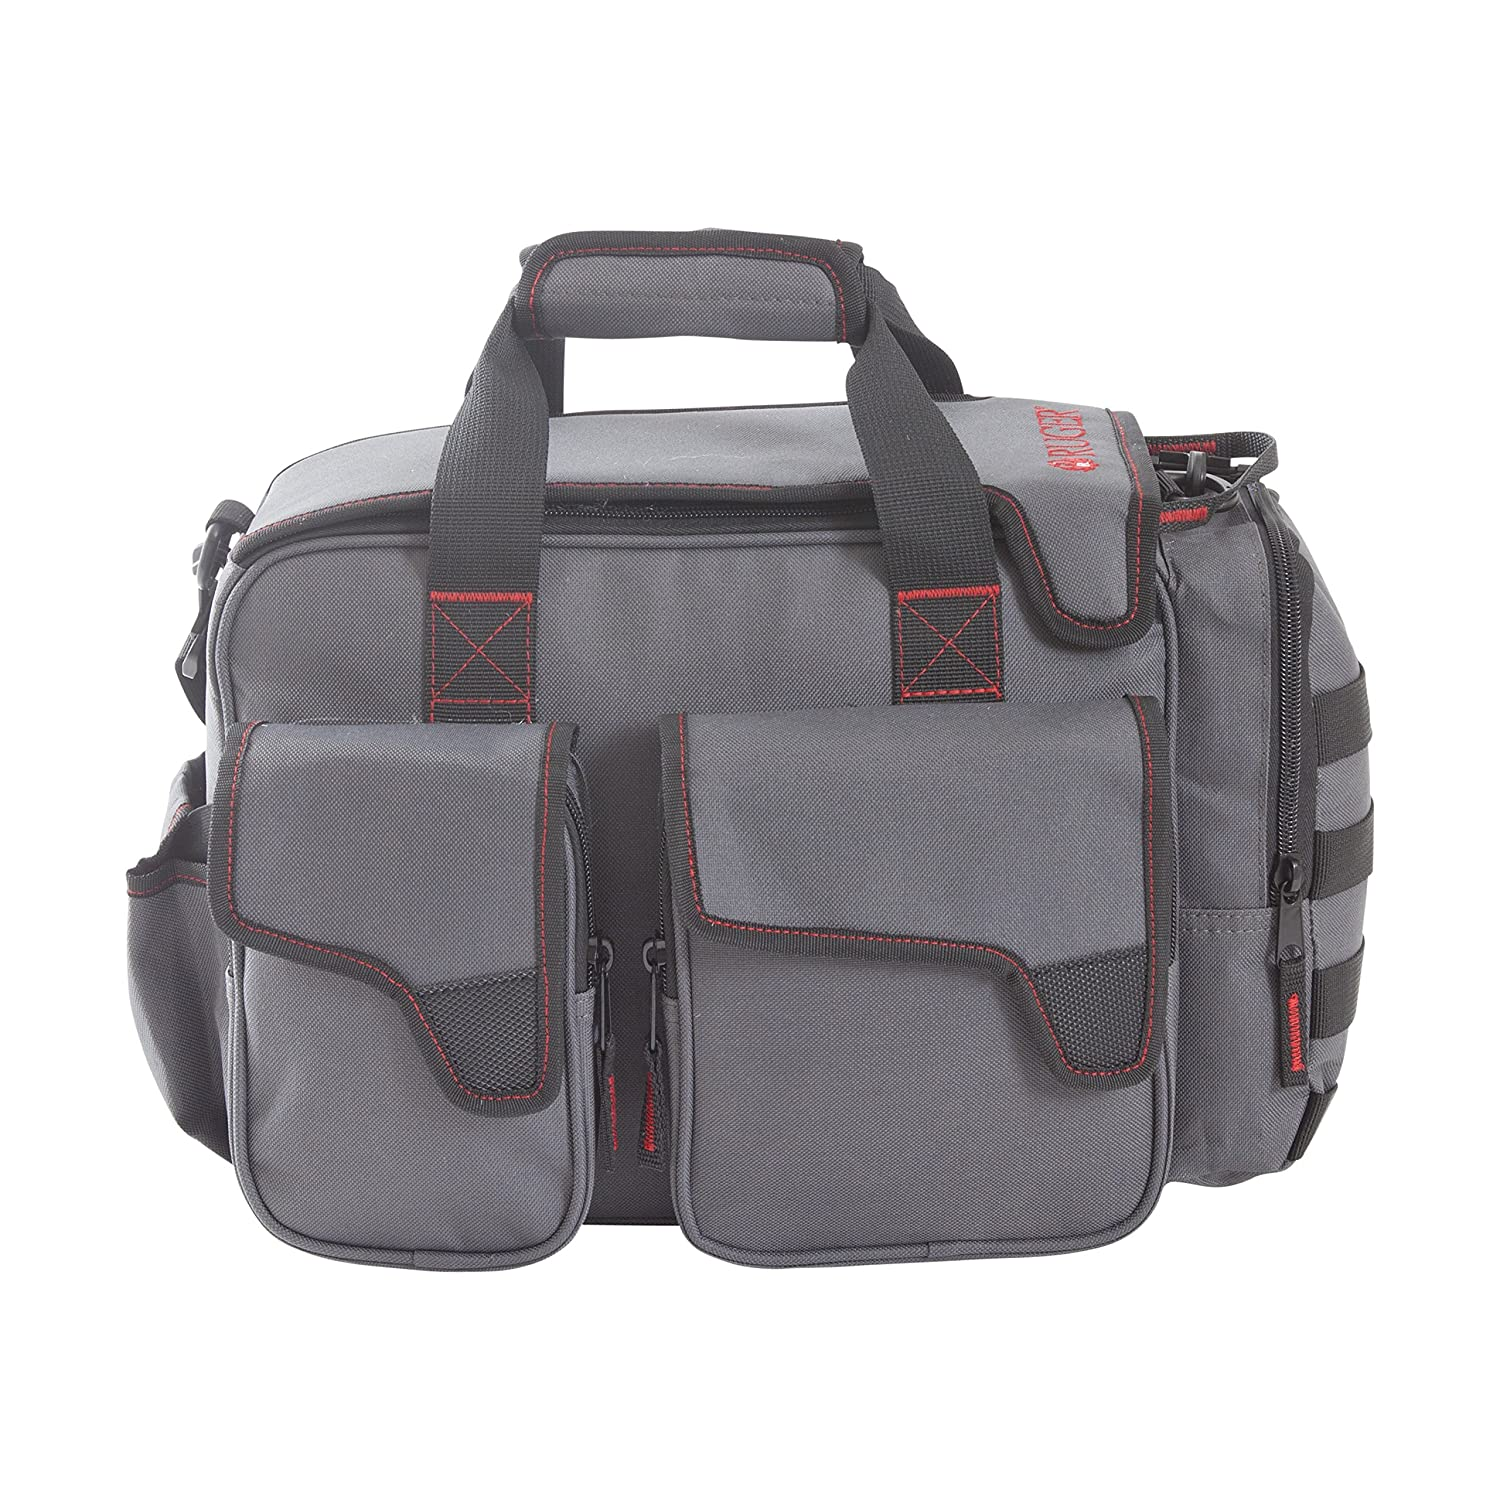 Allen Company 27029 Ruger Southport Compact Range Bag, Gray